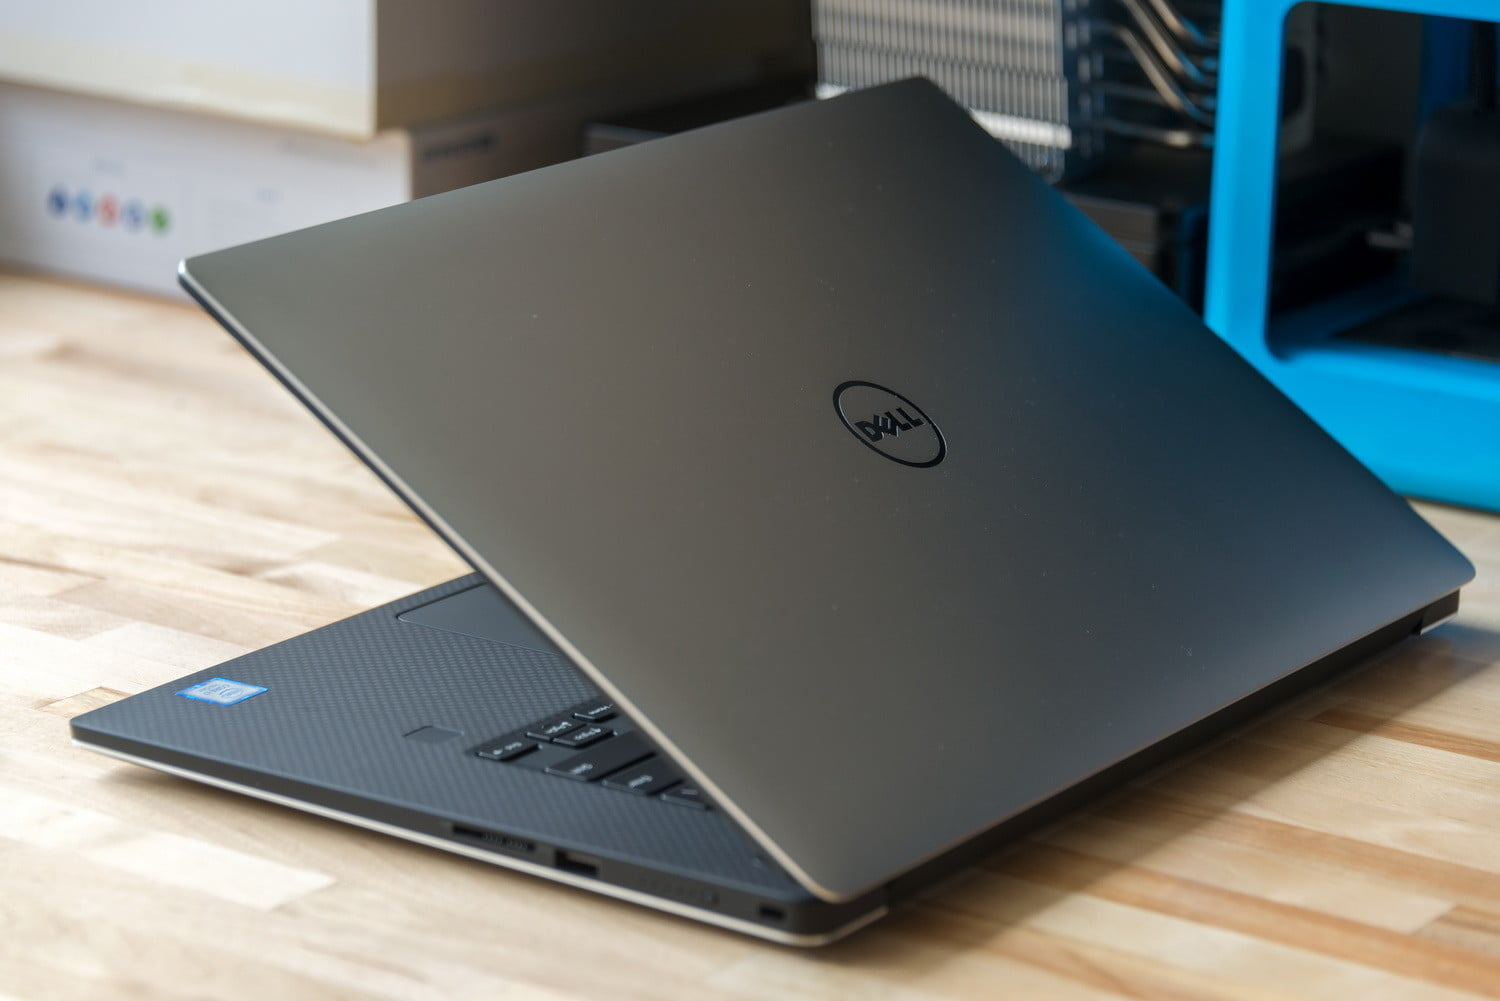 pc market sales increase in first quarter of 2017 budget gaming dell xps 15 2